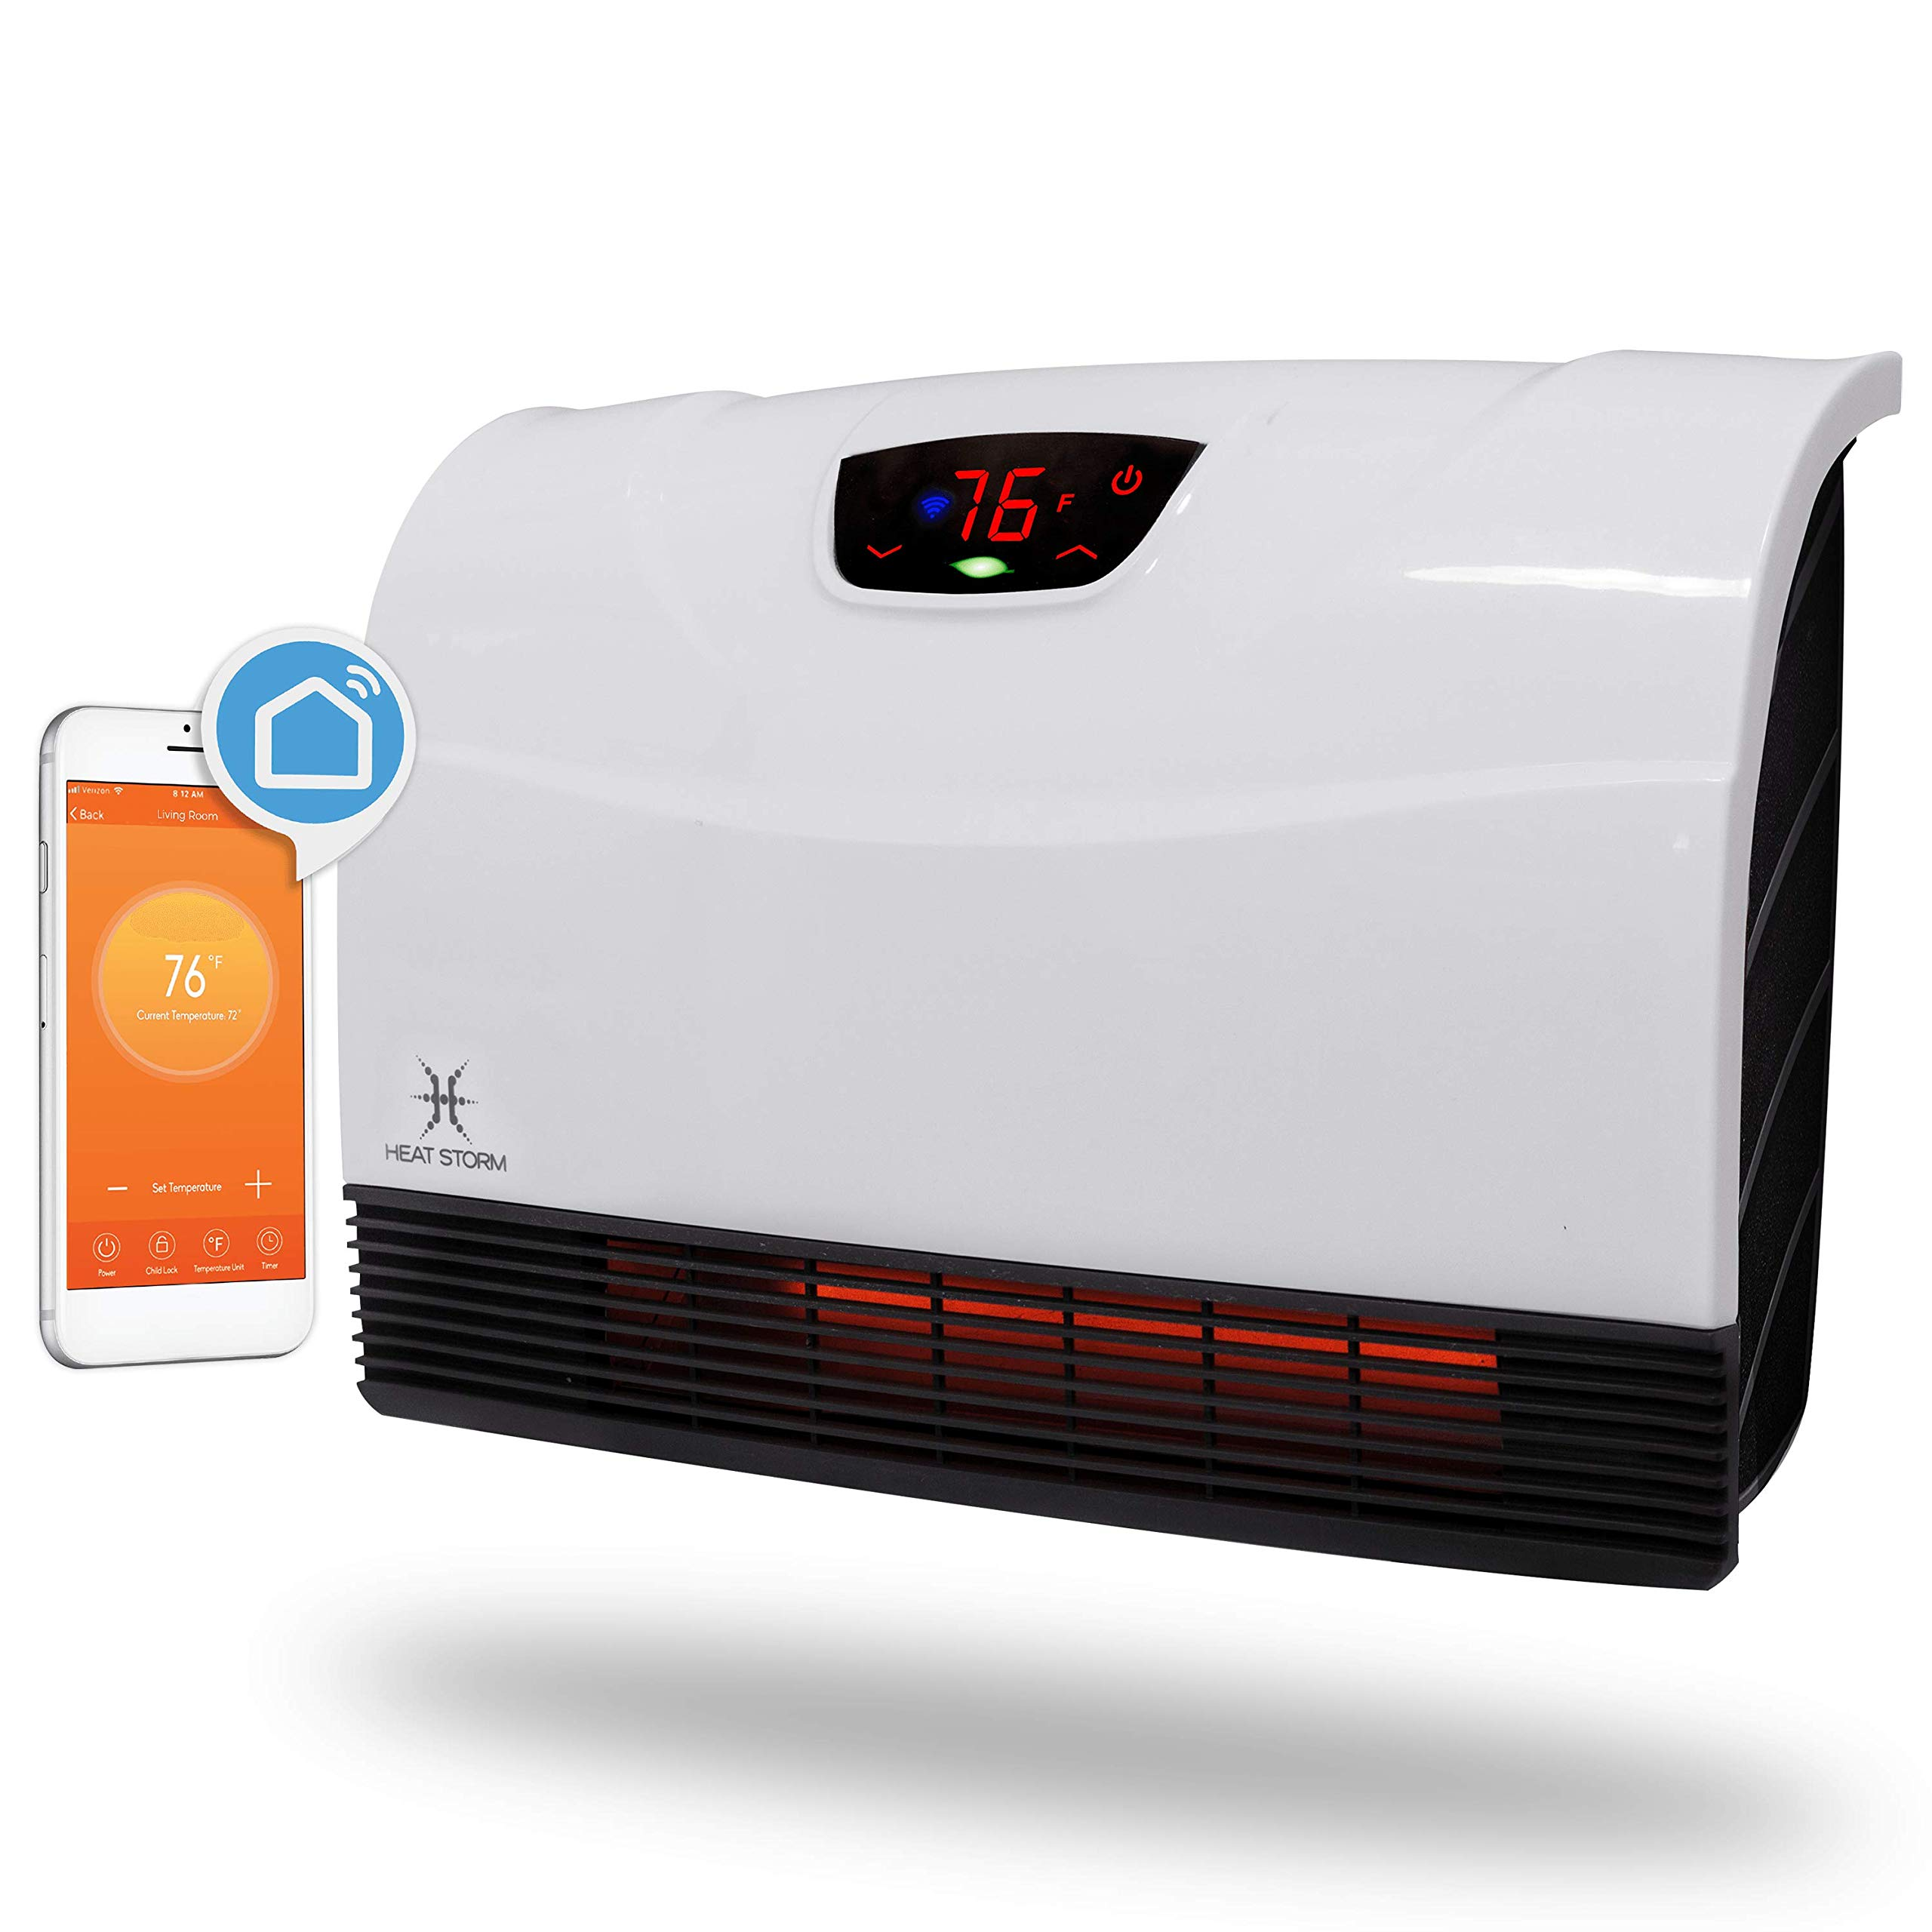 Heat Storm HS-1500-PHX-WIFI Infrared Heater, WiFi by Heat Storm